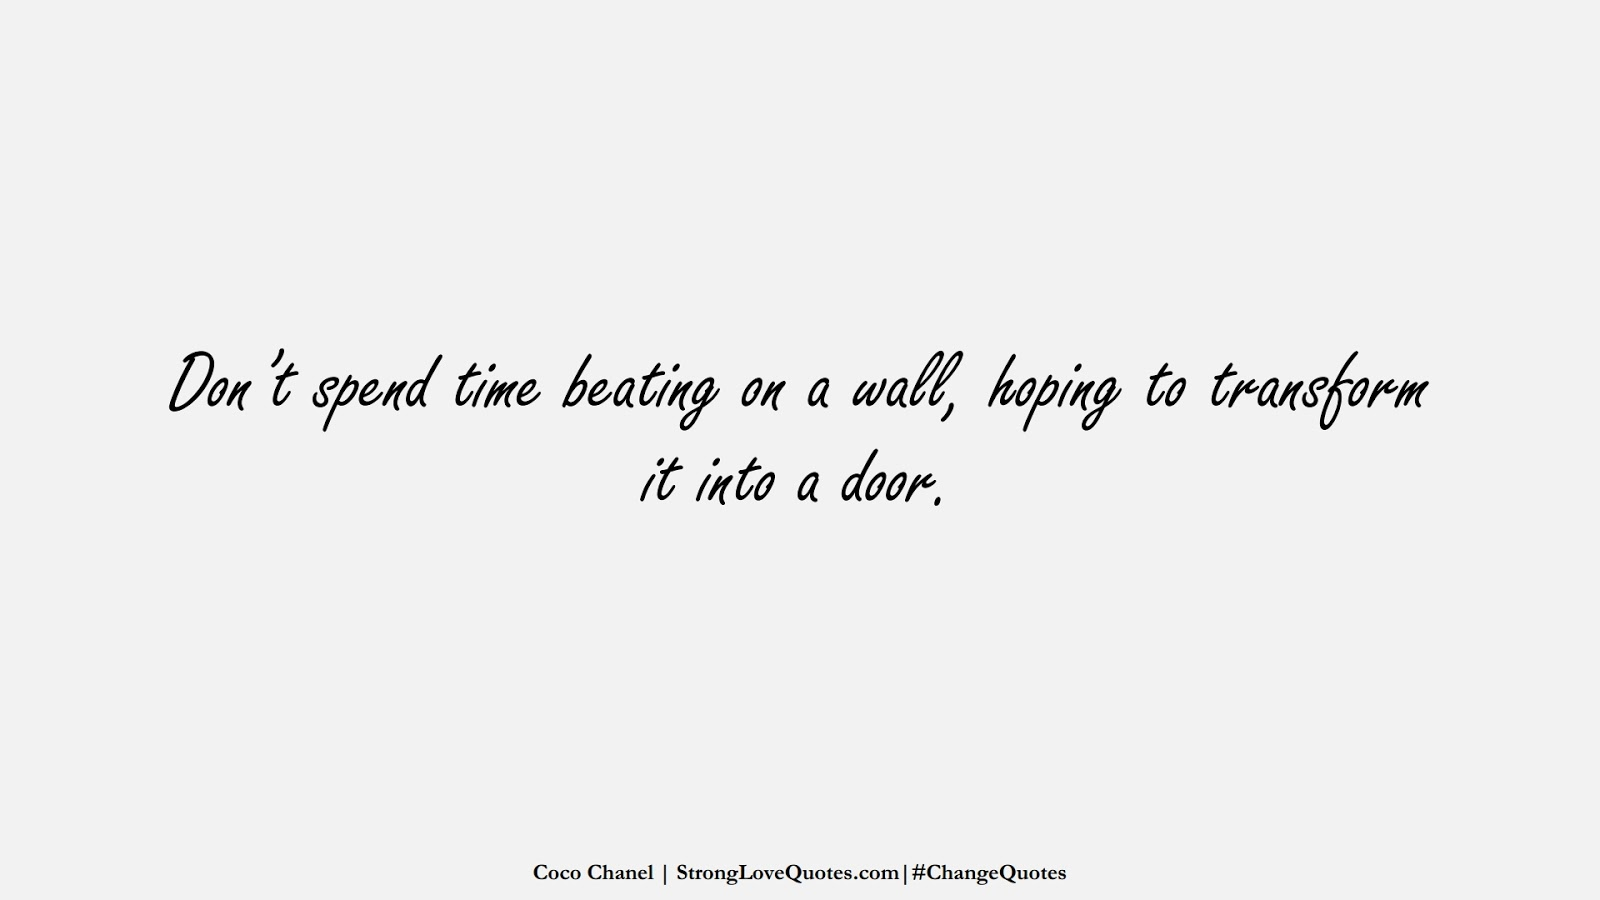 Don't spend time beating on a wall, hoping to transform it into a door. (Coco Chanel);  #ChangeQuotes